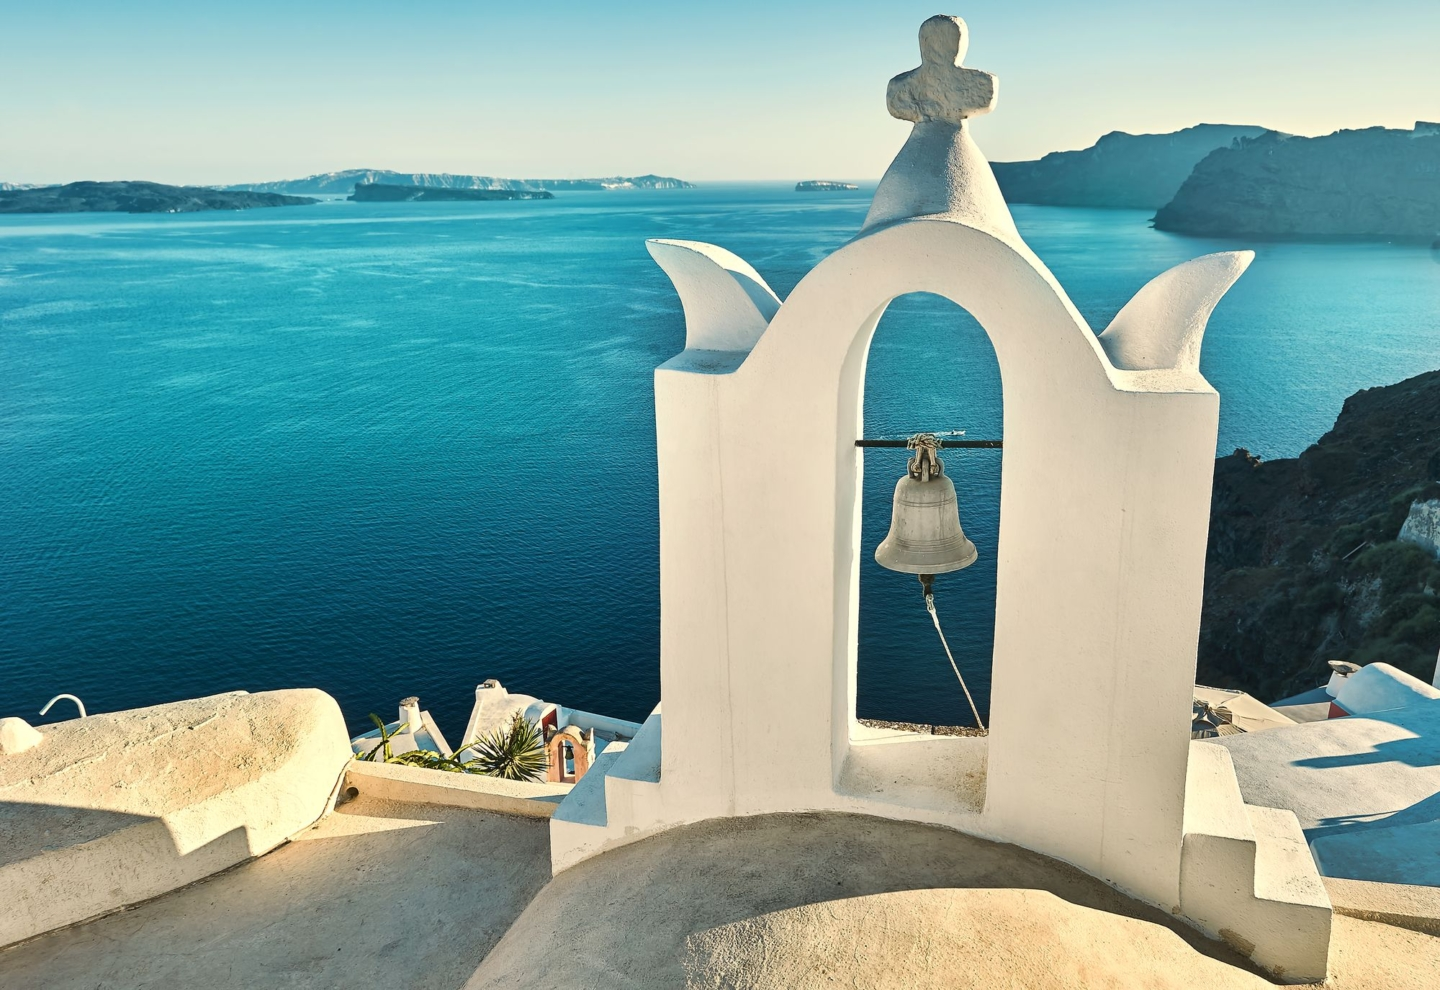 Seaview over the white terrace of Santorini, Cyclades,Greece